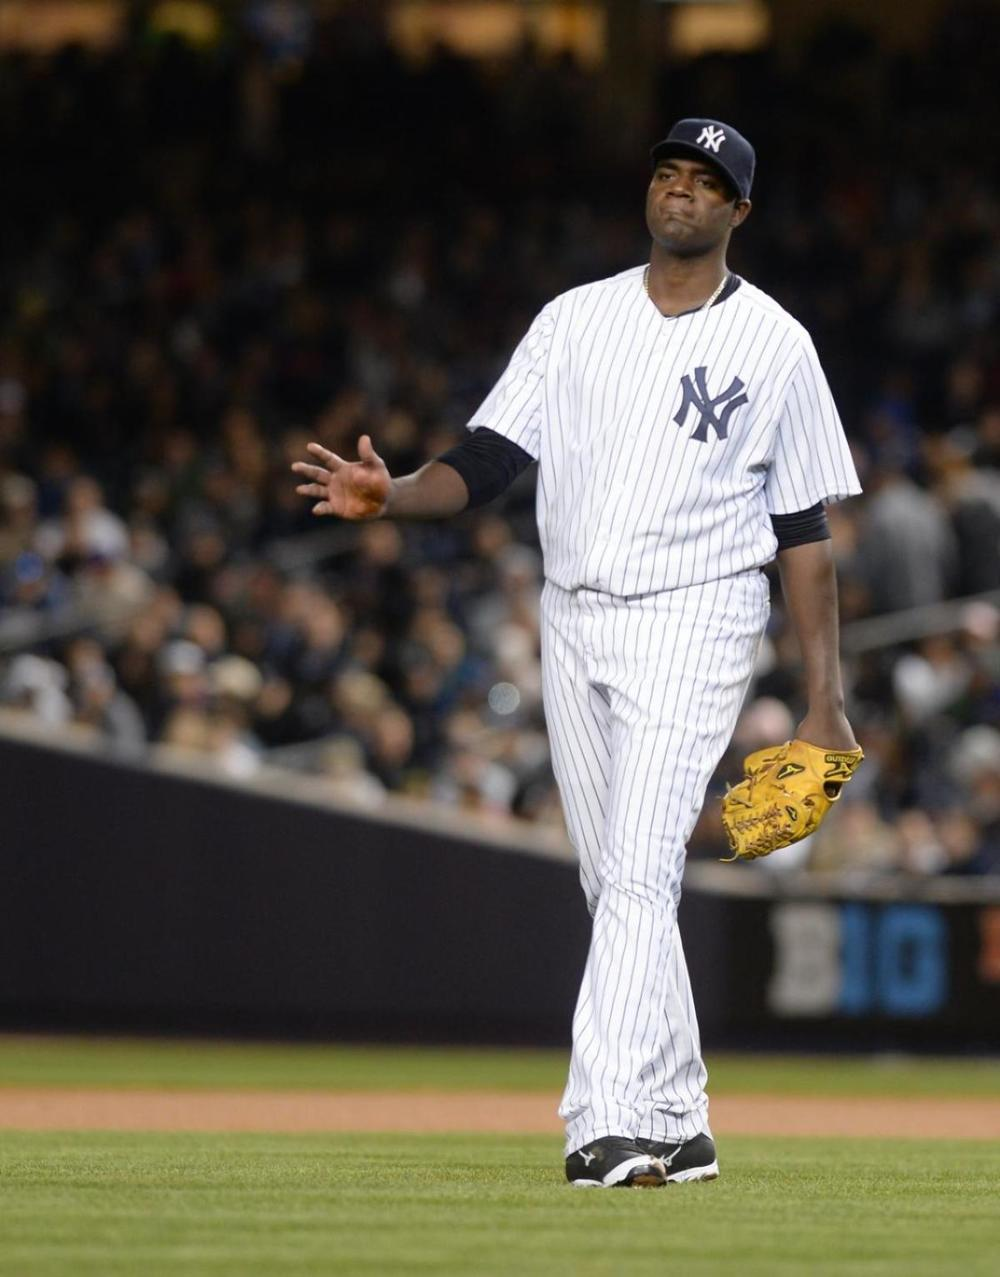 Michael Pineda struck out 7 batters but everyone was curious about that dark greasy substance in his hands.  (Mark Bonifacio/New York Daily)